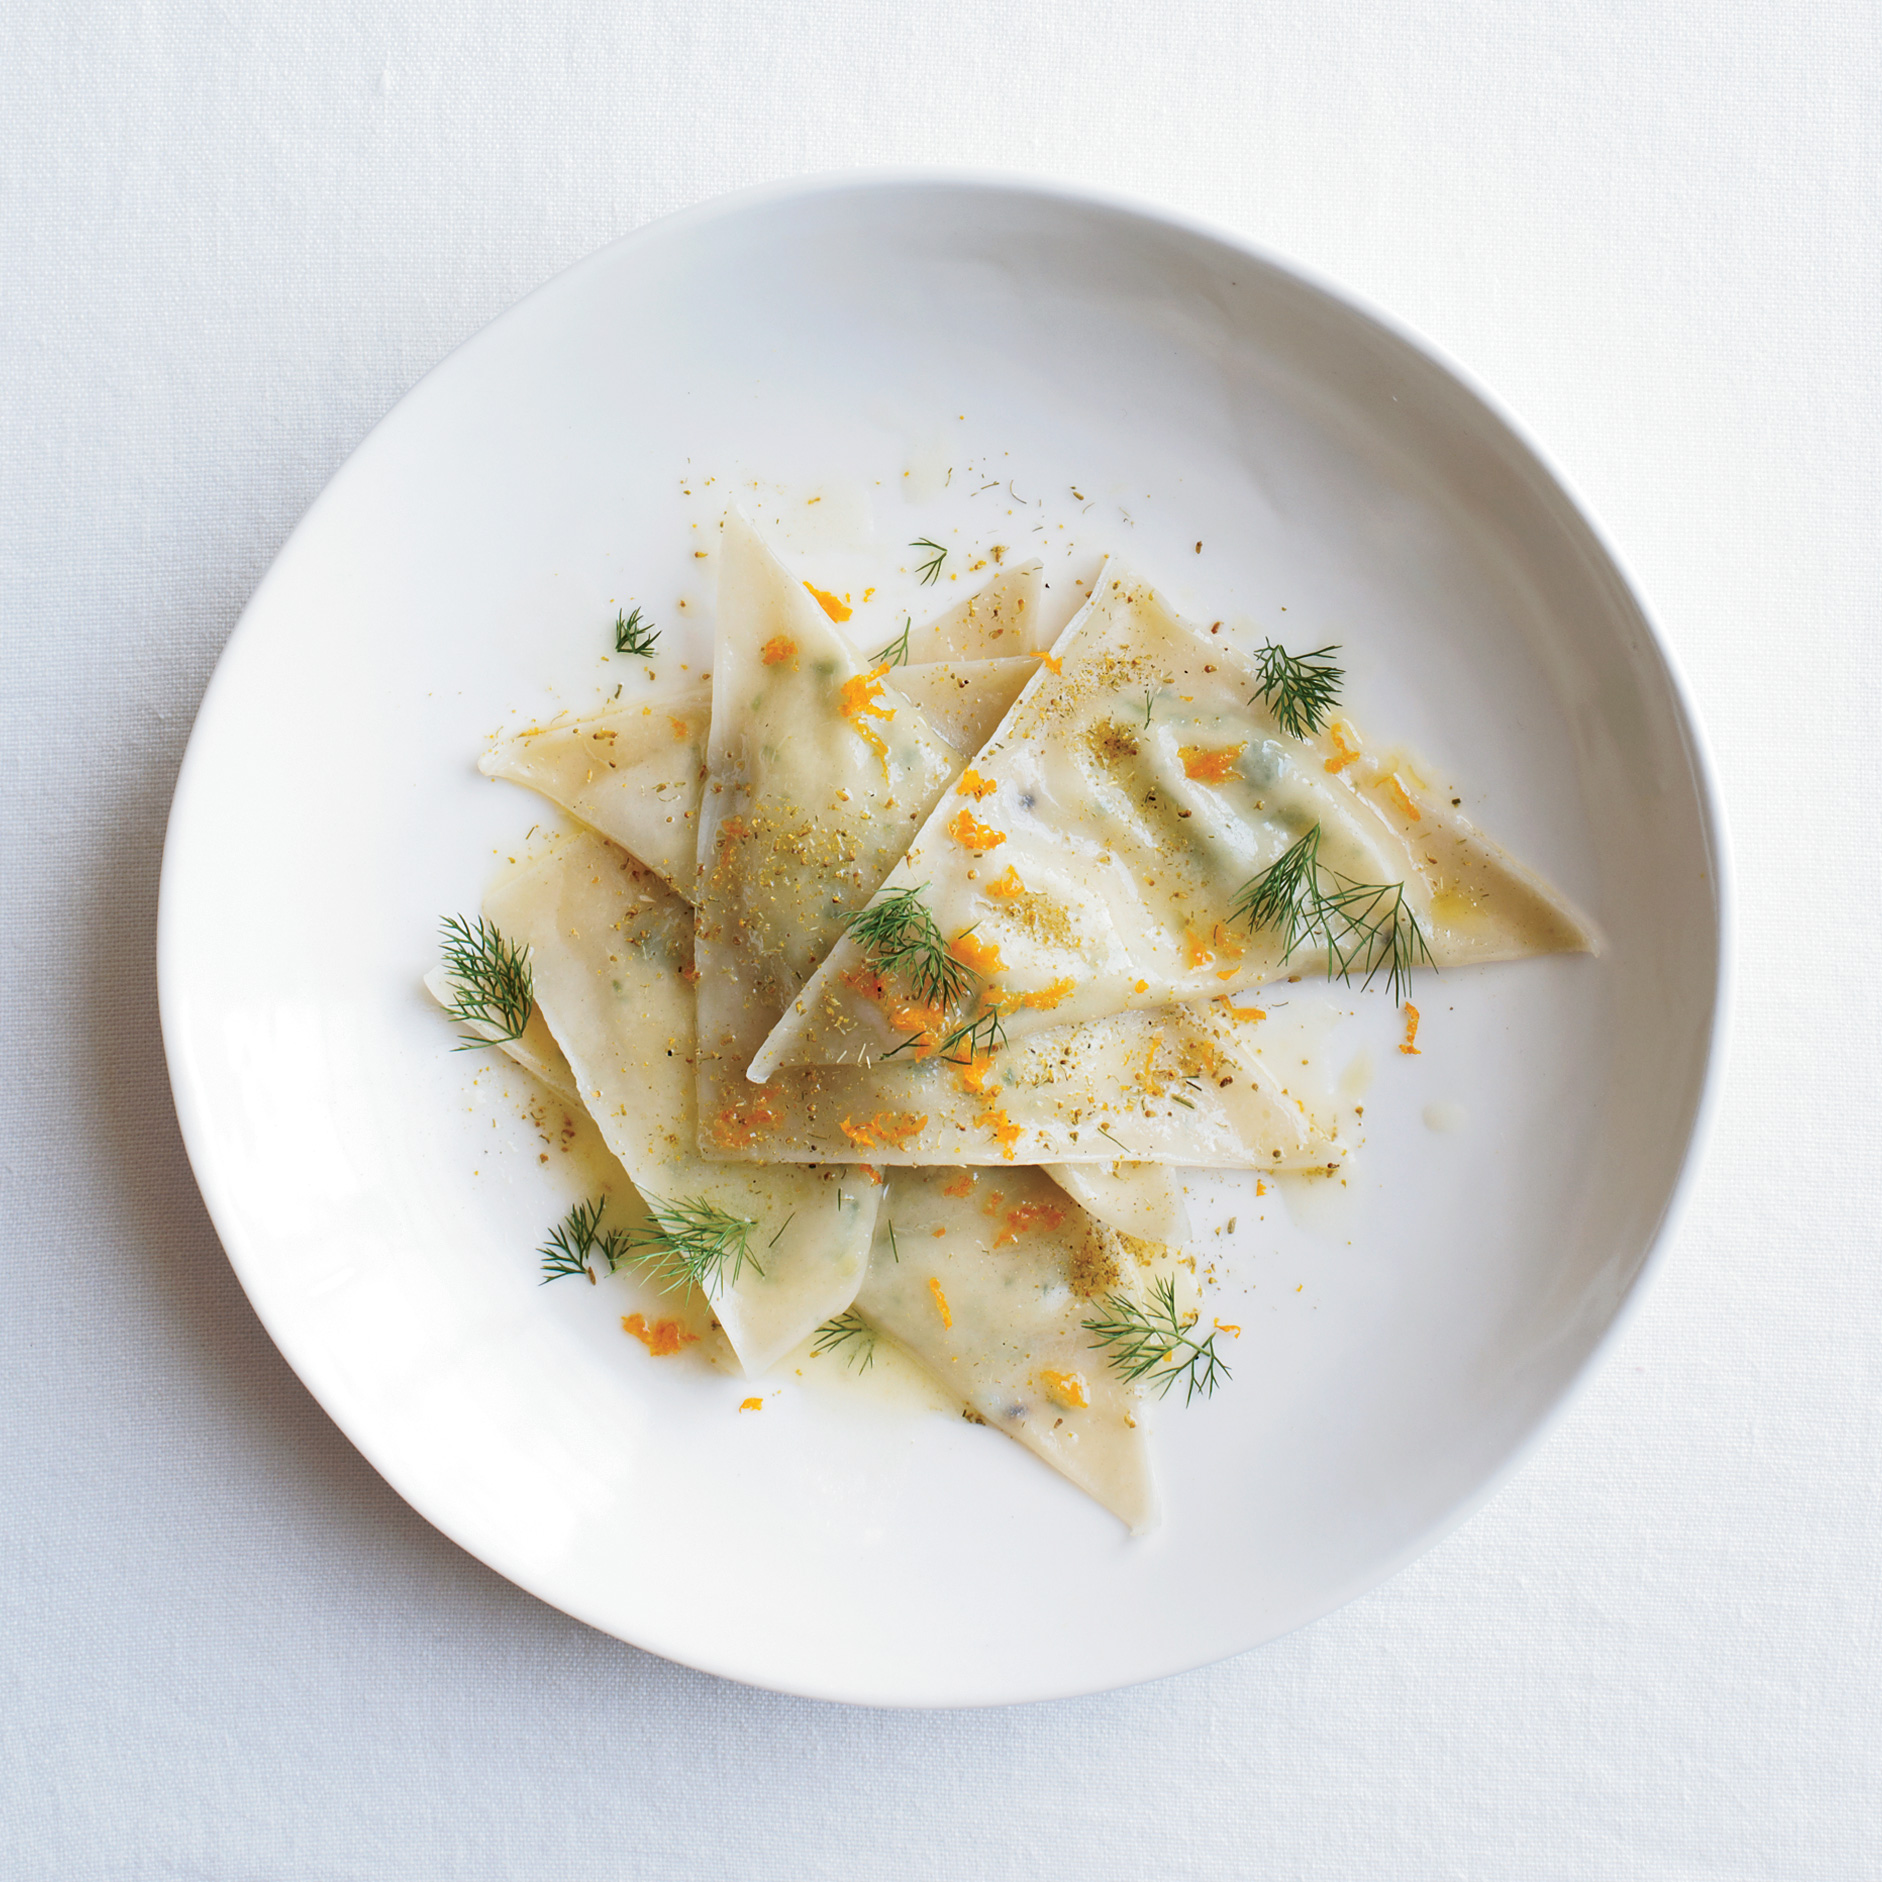 original-201207-r-goat-cheese-ravioli-with-orange-and-fennel.jpg